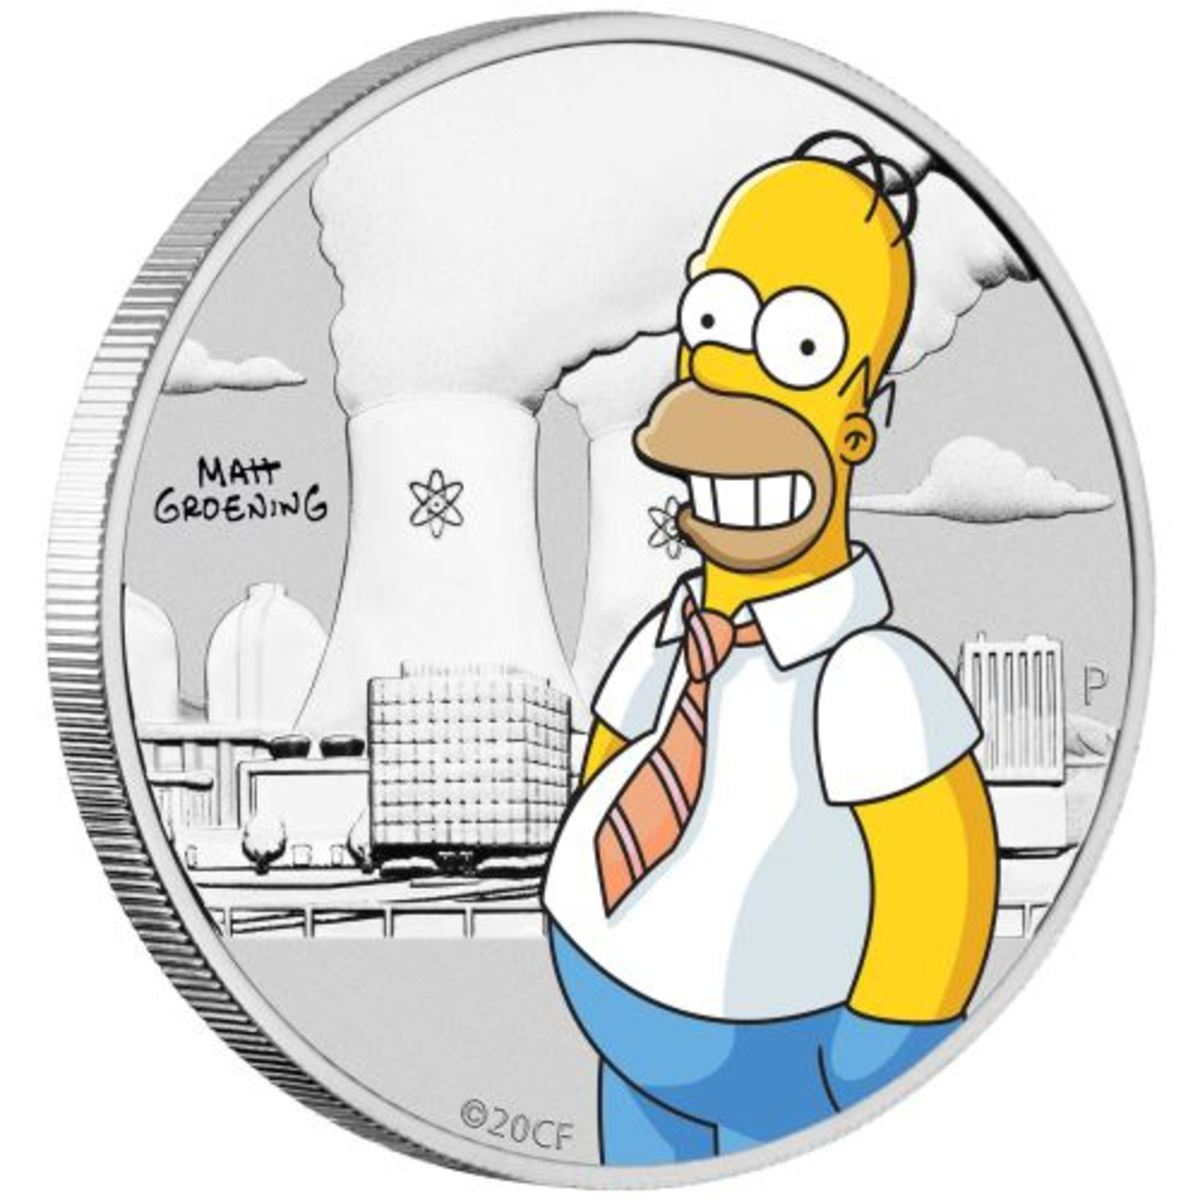 New Homer Simpson coin from the Perth Mint. THE SIMPSONS TM & © Twentieth Century Fox Film Corporation. All Rights Reserved.